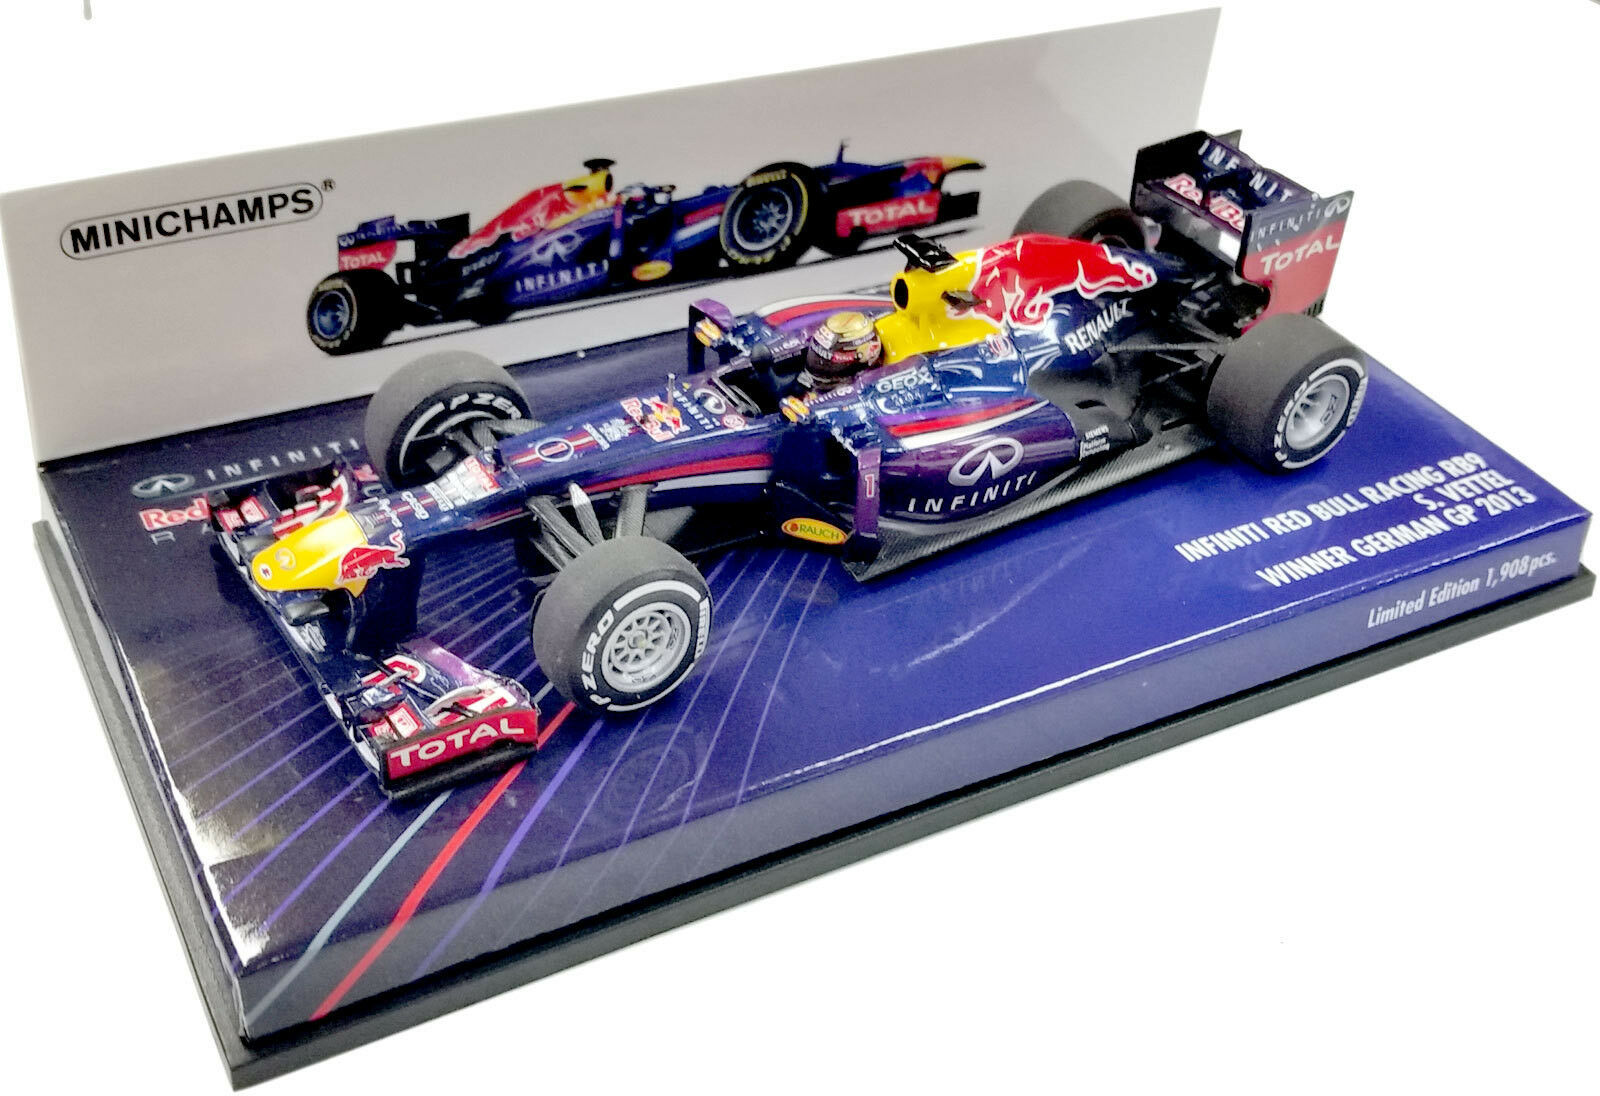 MINICHAMPS 1 43 2013 INFINITI RED BULL RB9 GERMAN GP SEBASTIEN VETTEL 410130101